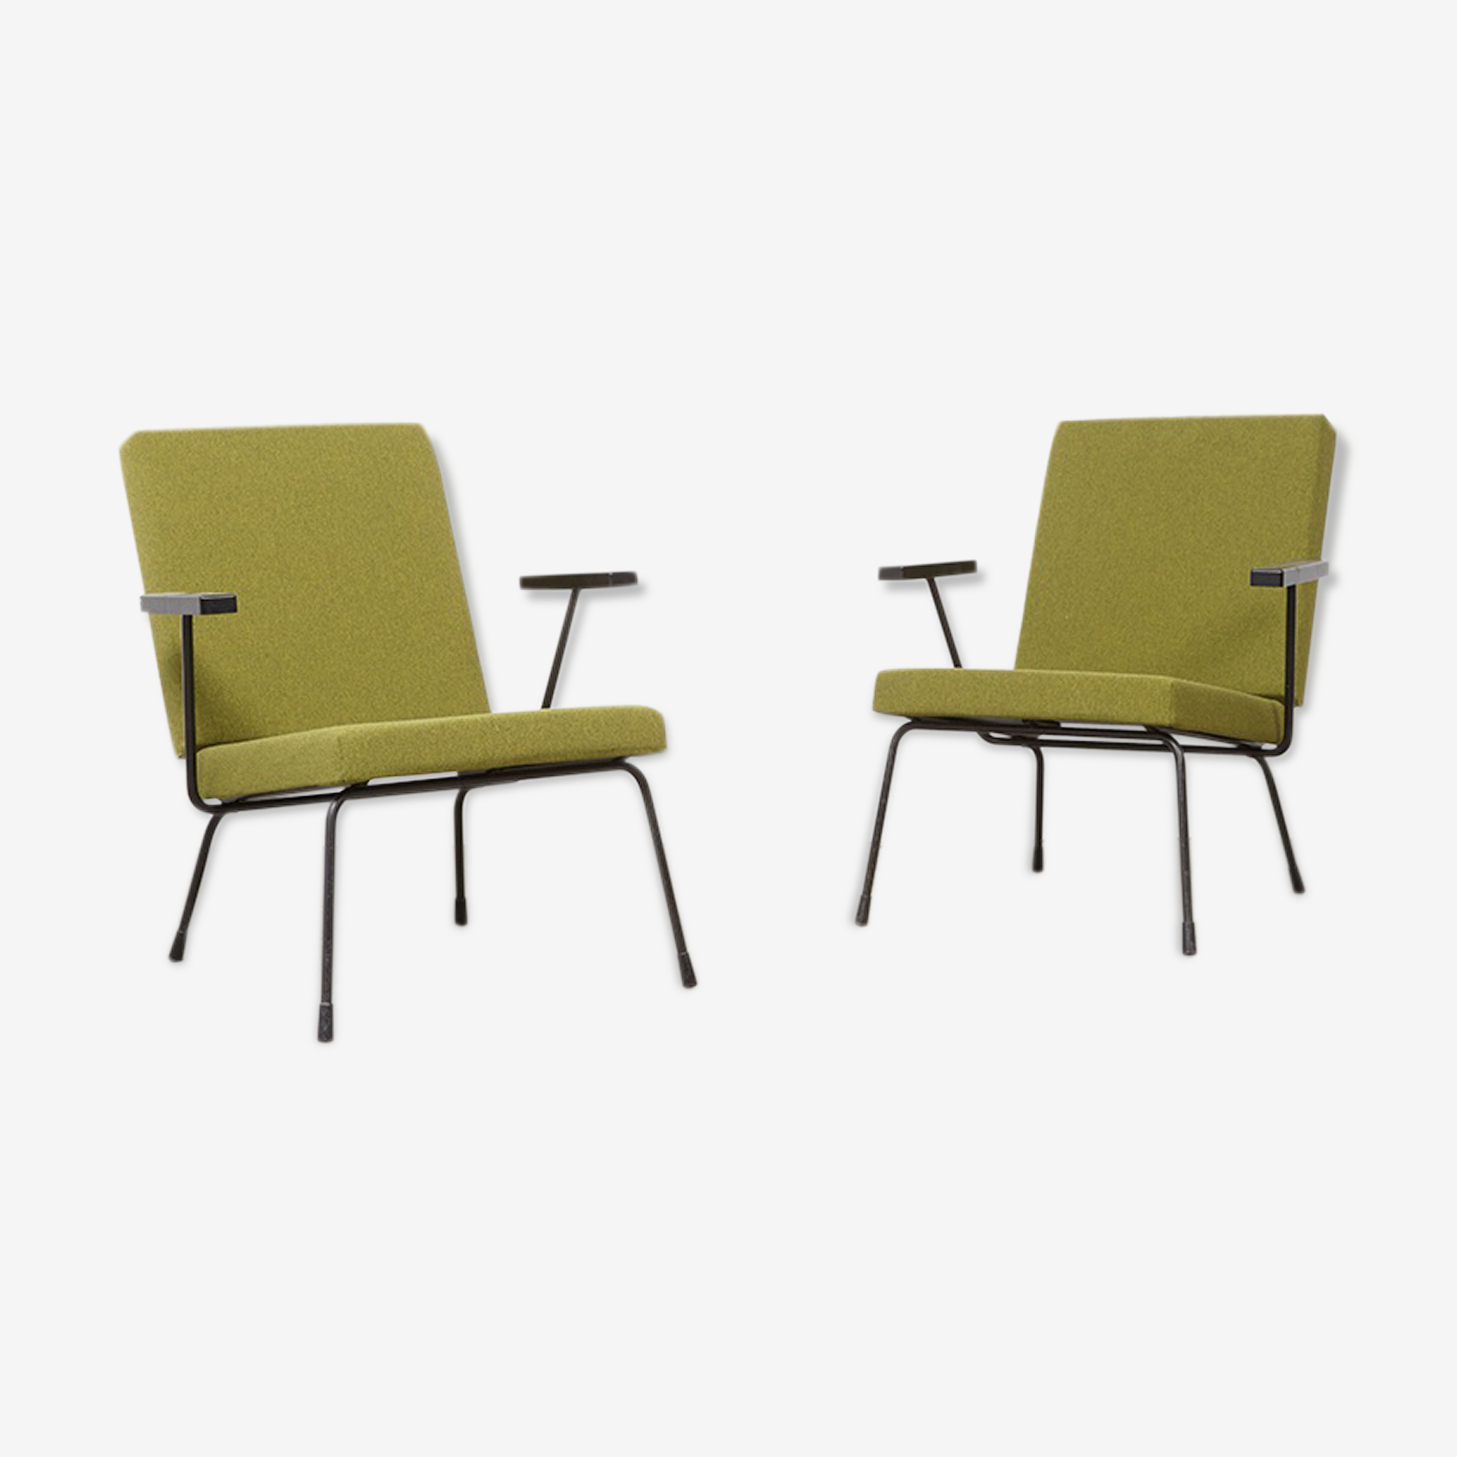 Pair of chairs gispen 1407, by Wim Rietveld in 1954